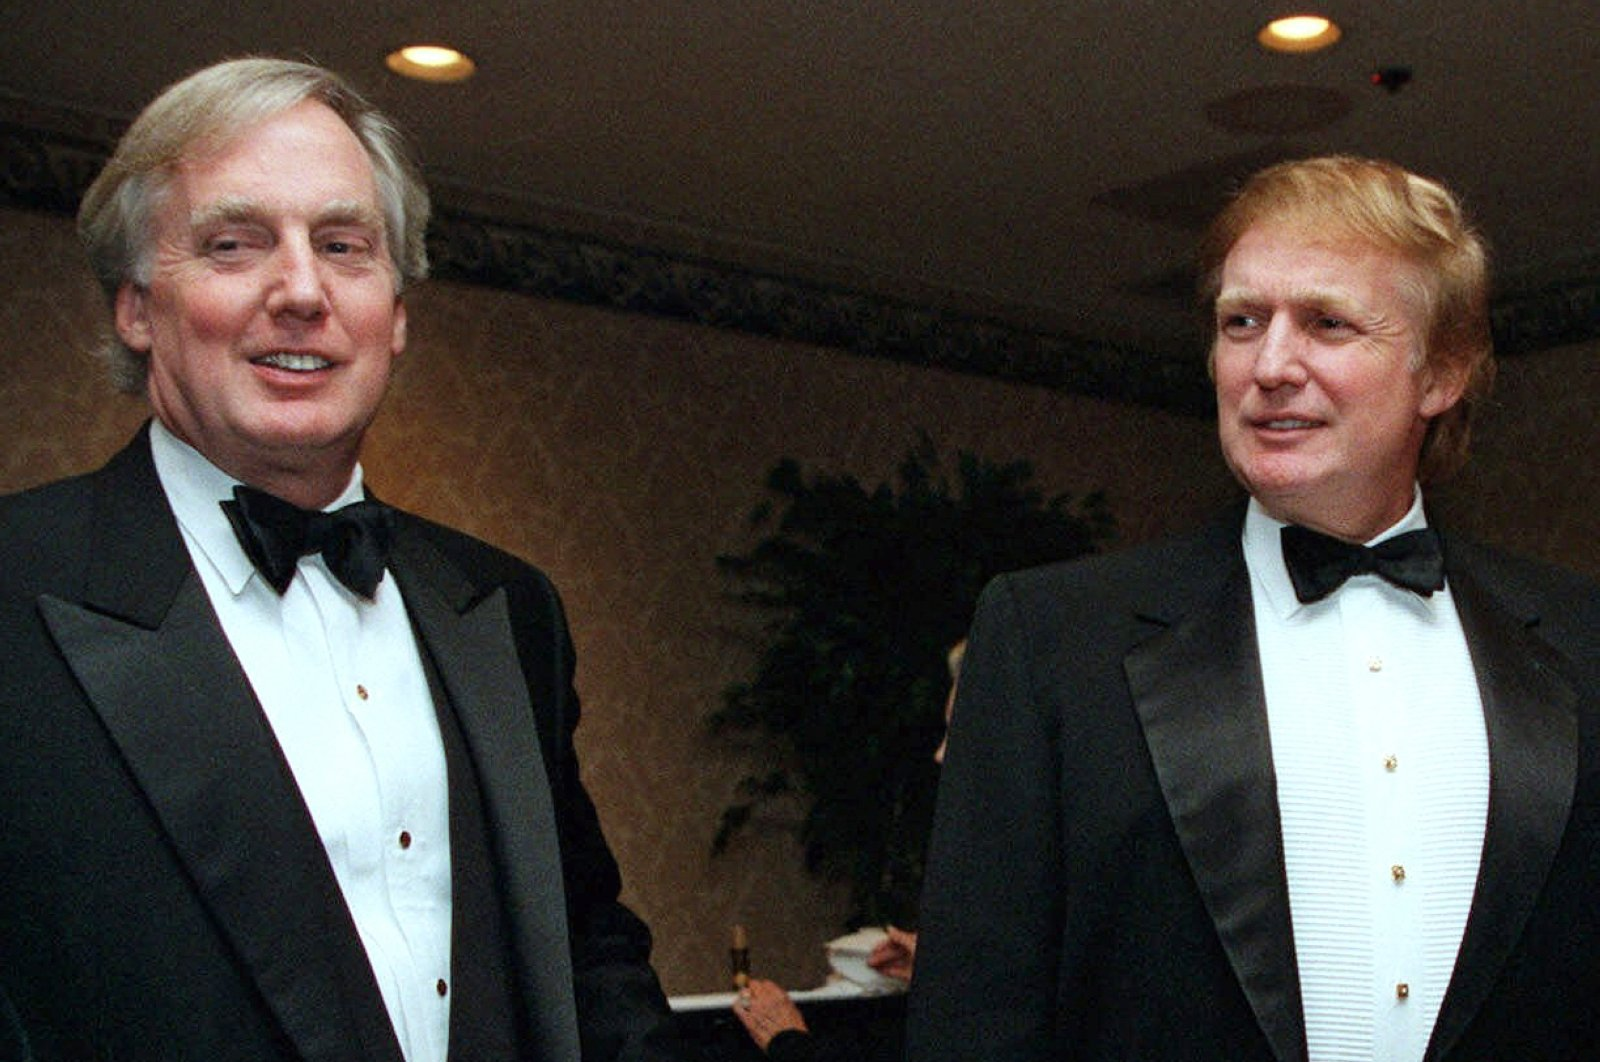 In this file photo, Robert Trump (L), joins then real estate developer and presidential hopeful Donald Trump at an event in New York, Nov. 3, 1999. (AP File Photo)